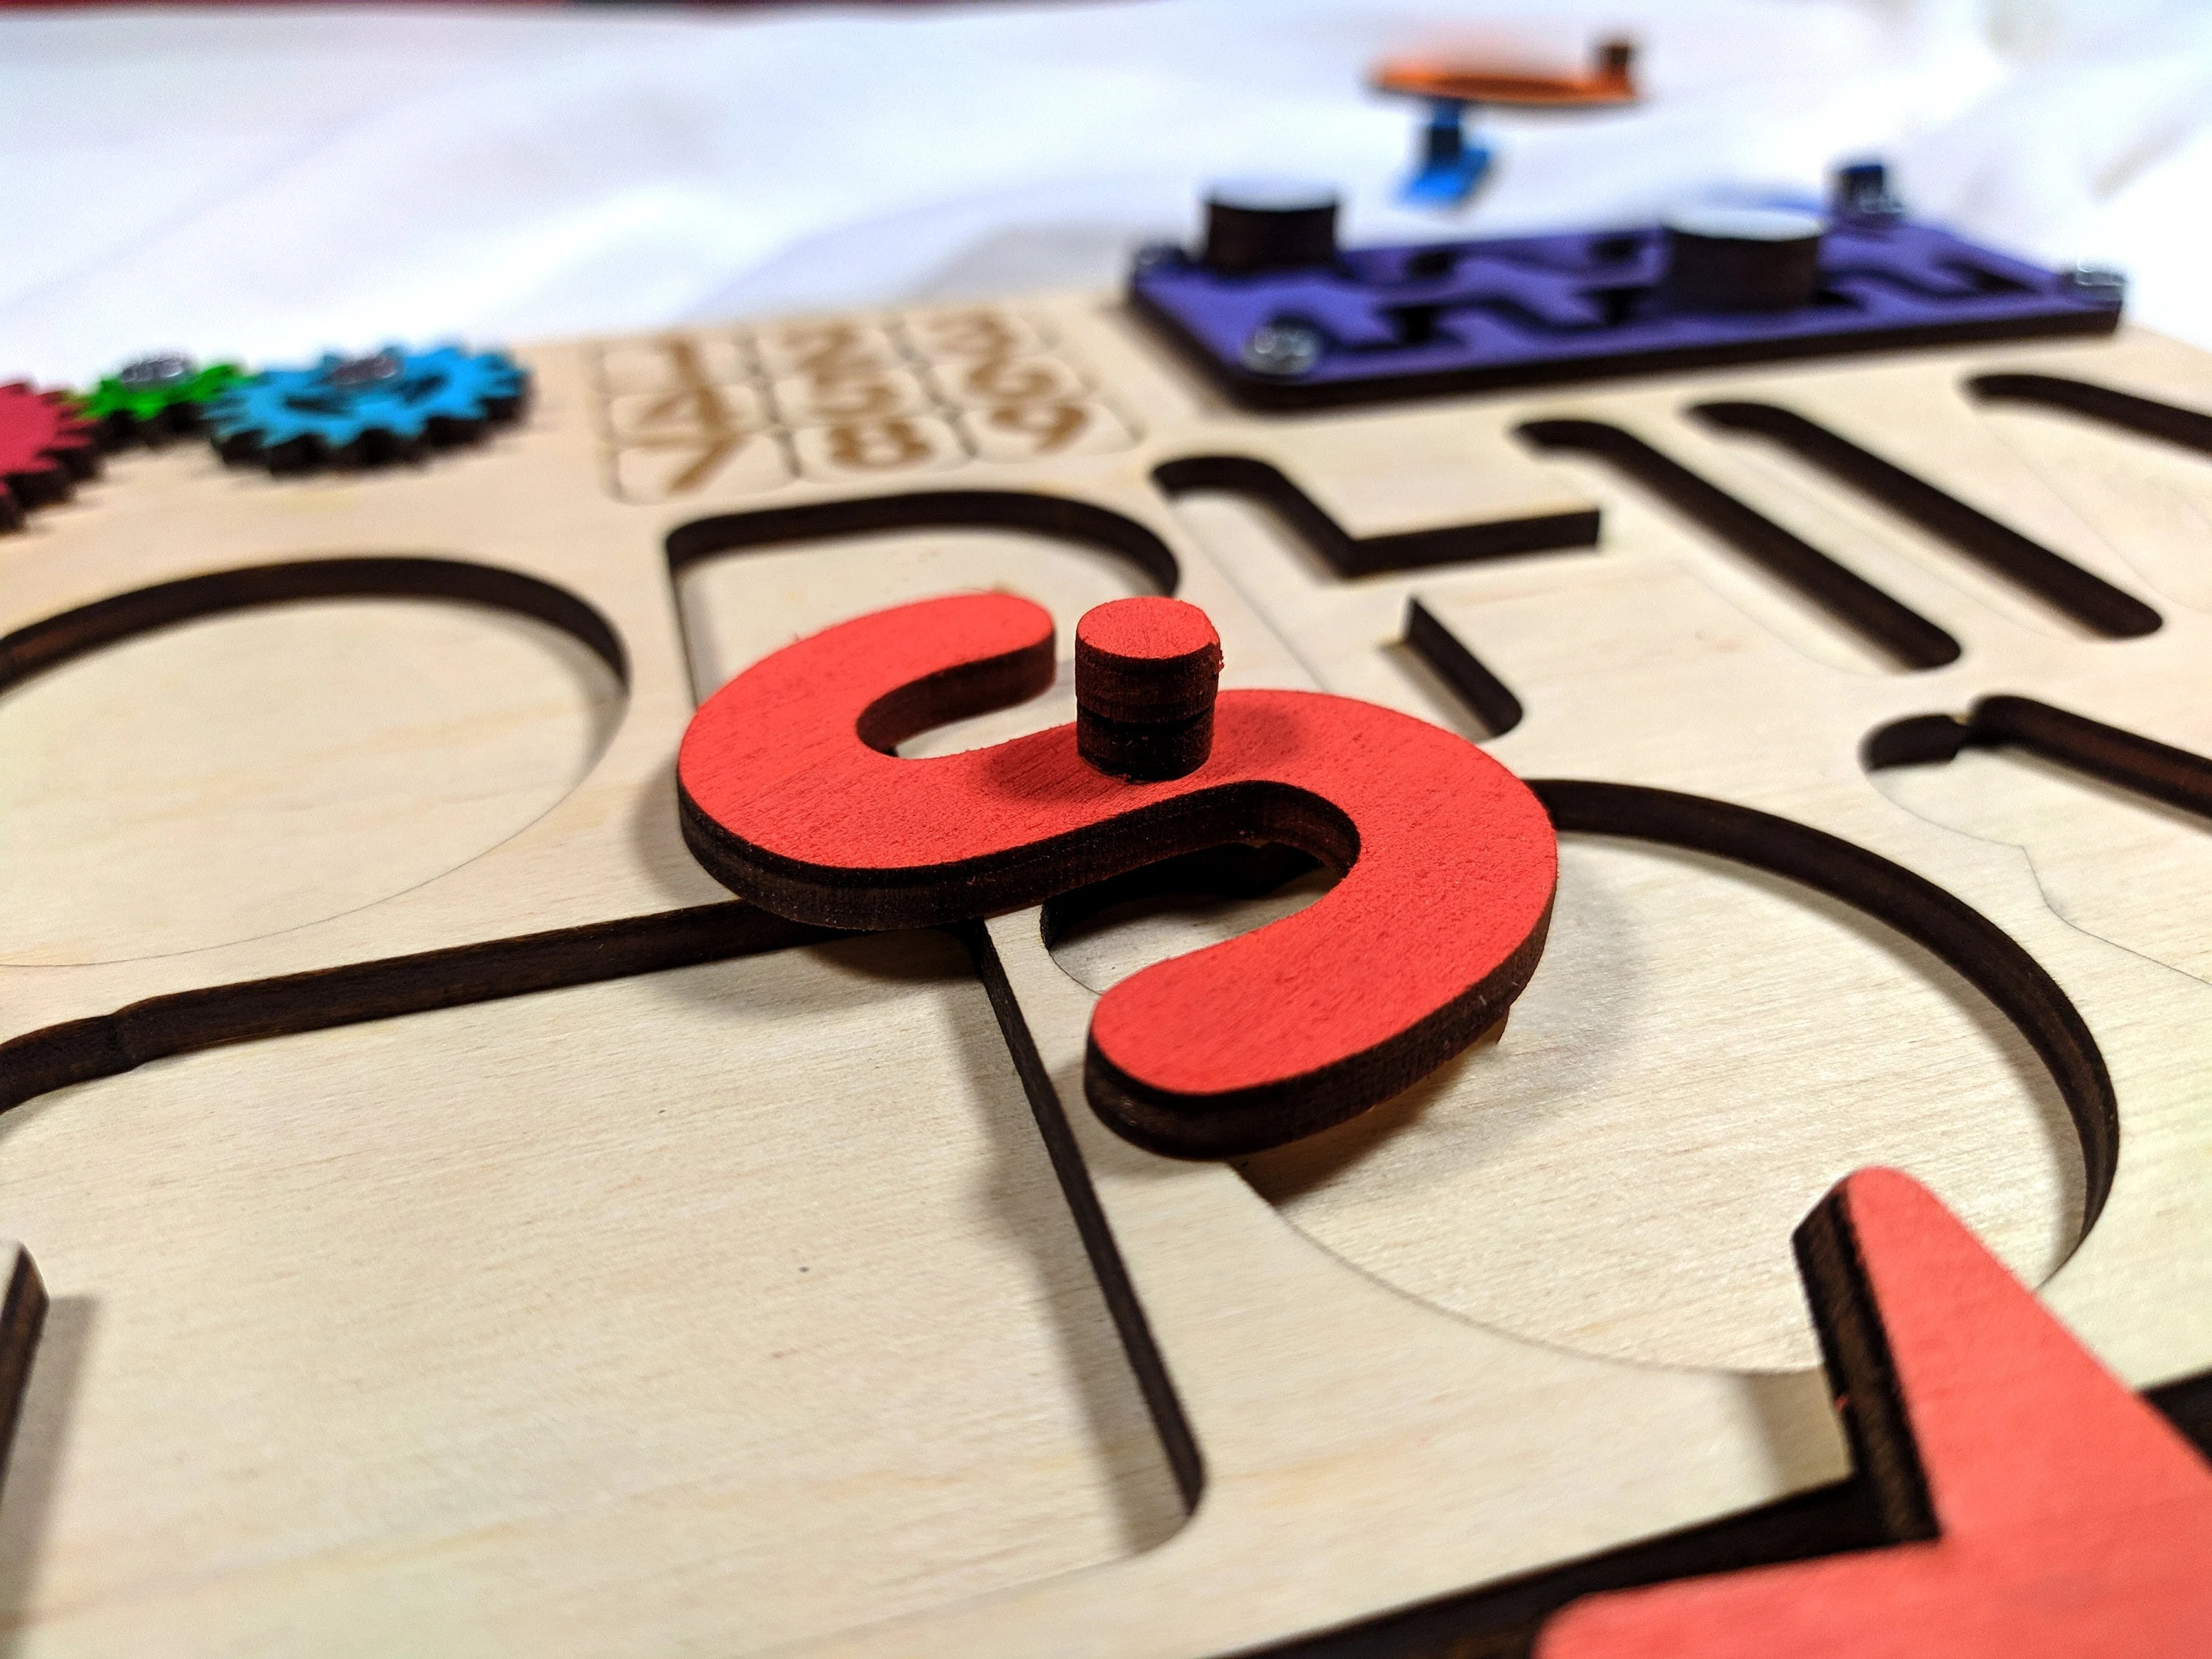 Personalized name puzzle with pegs Busy puzzle Wooden toys image 6